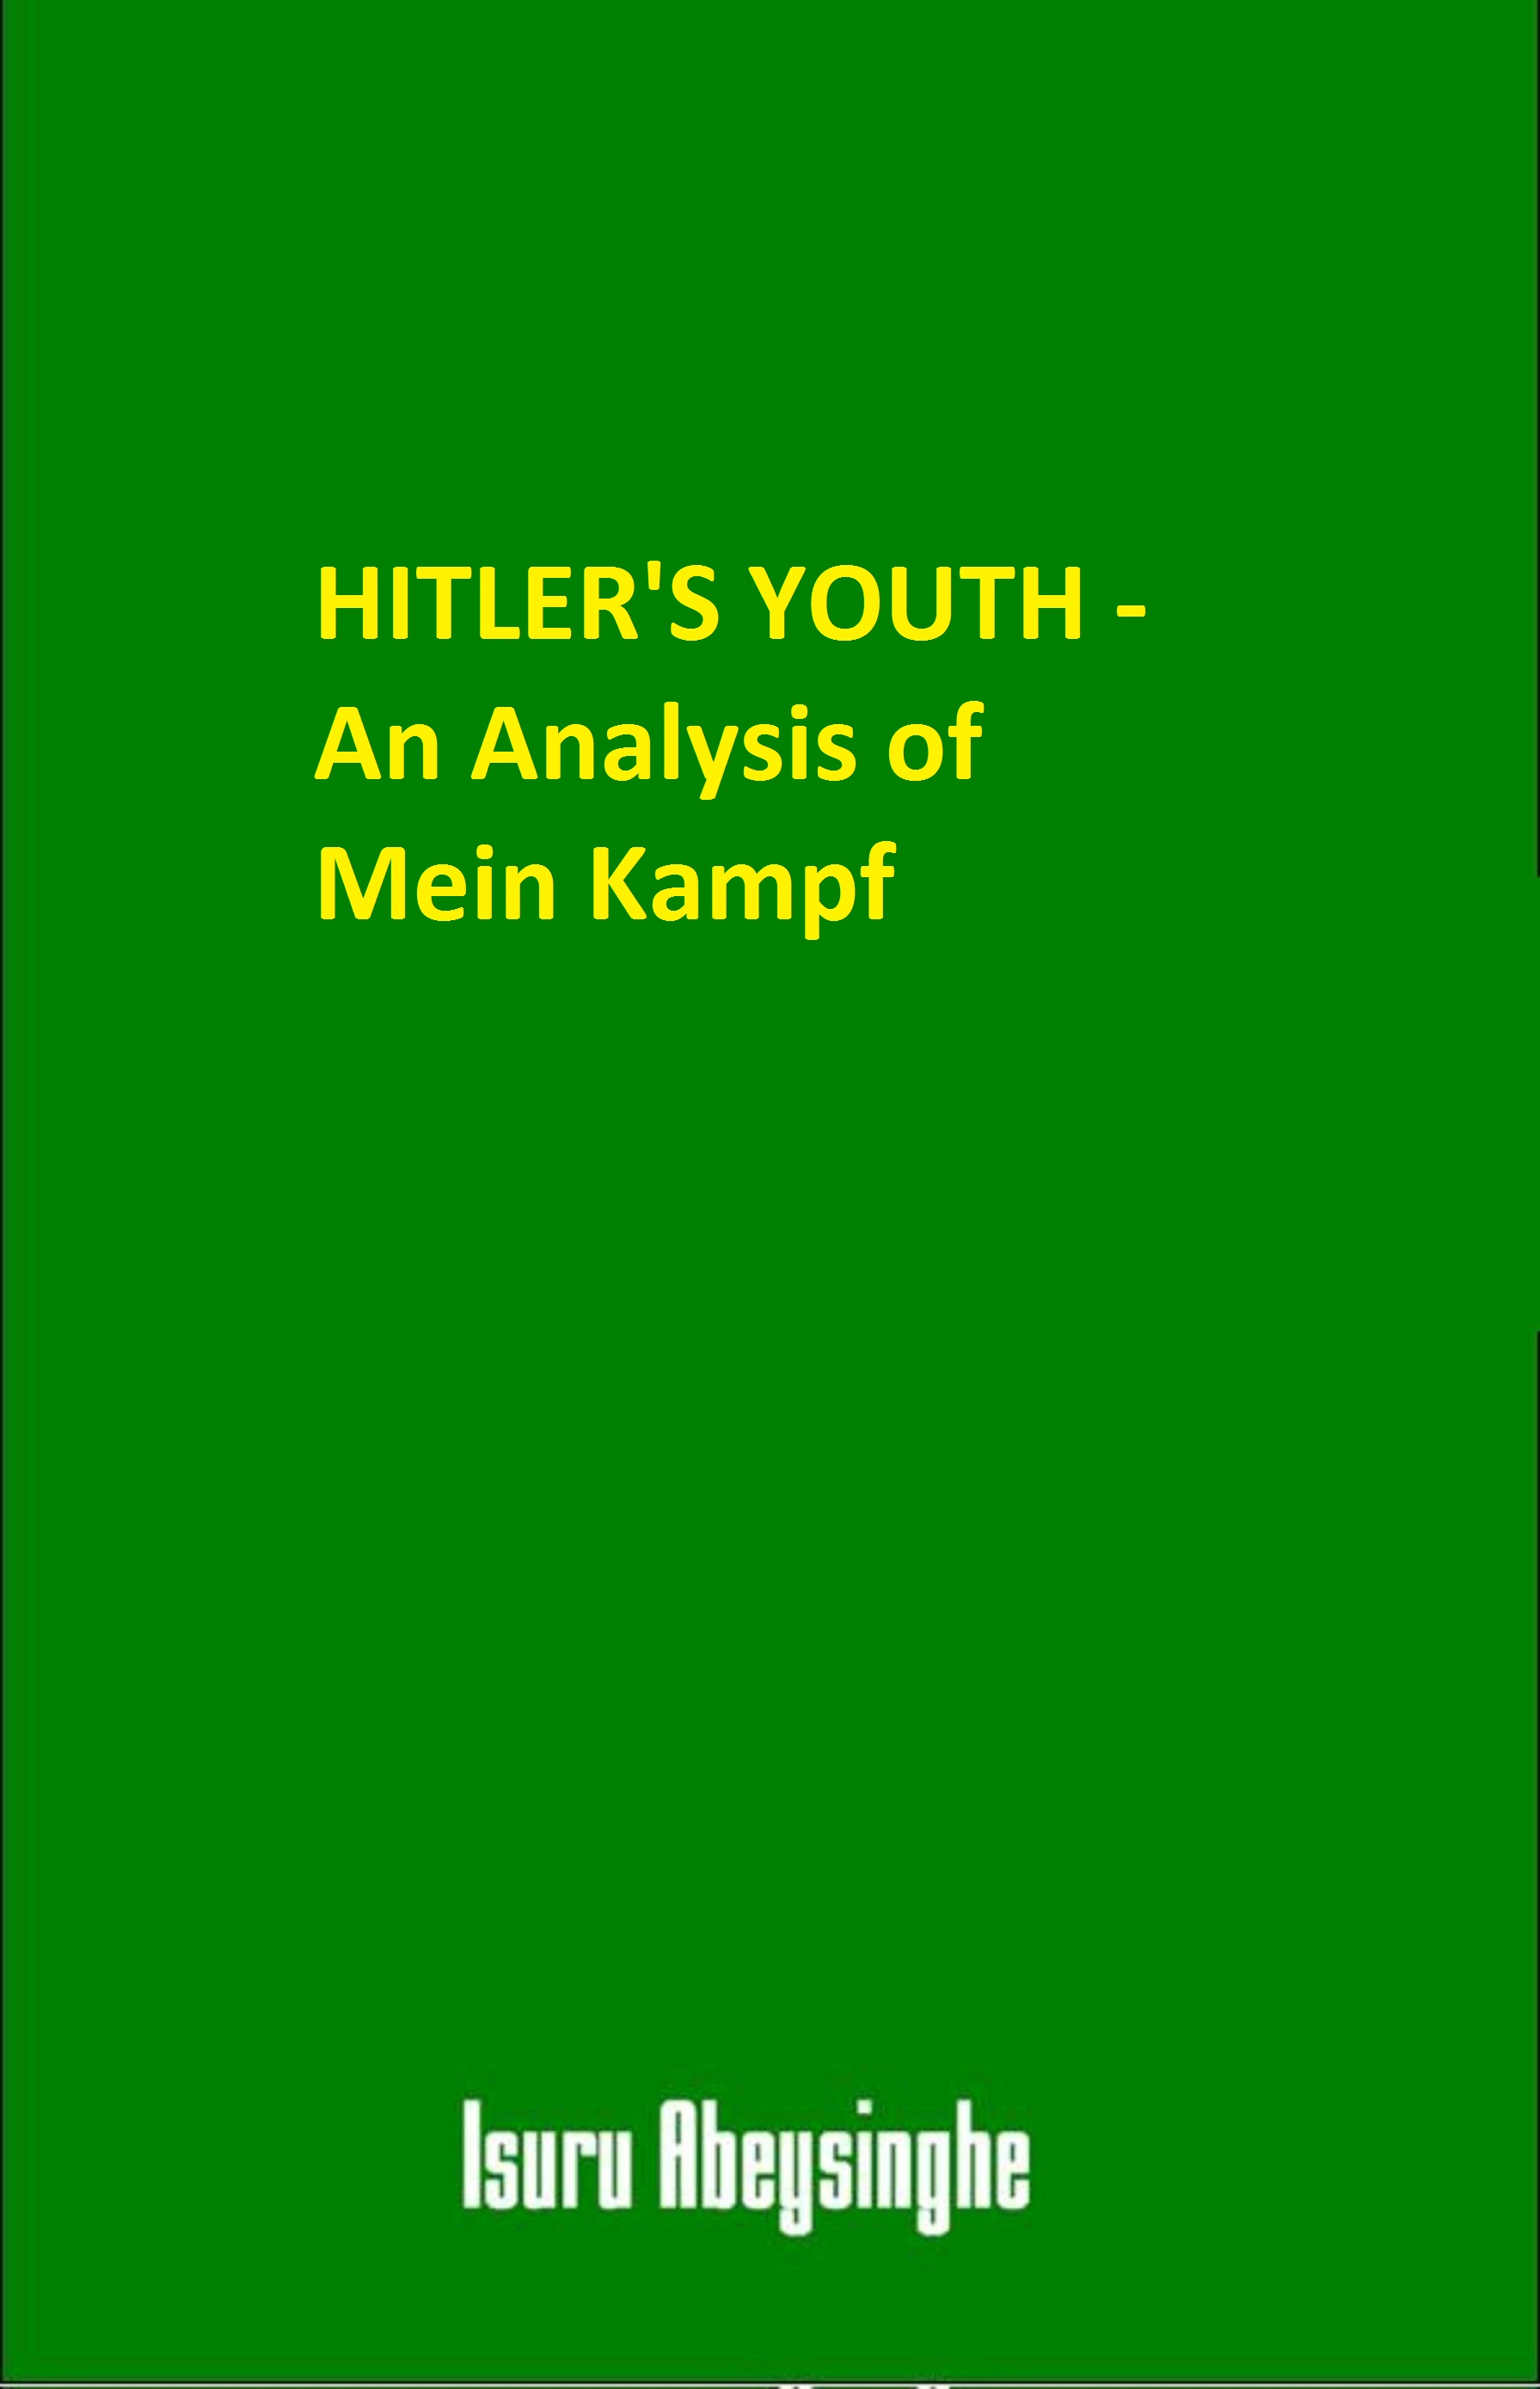 an analysis of the topic of the maude and hitler